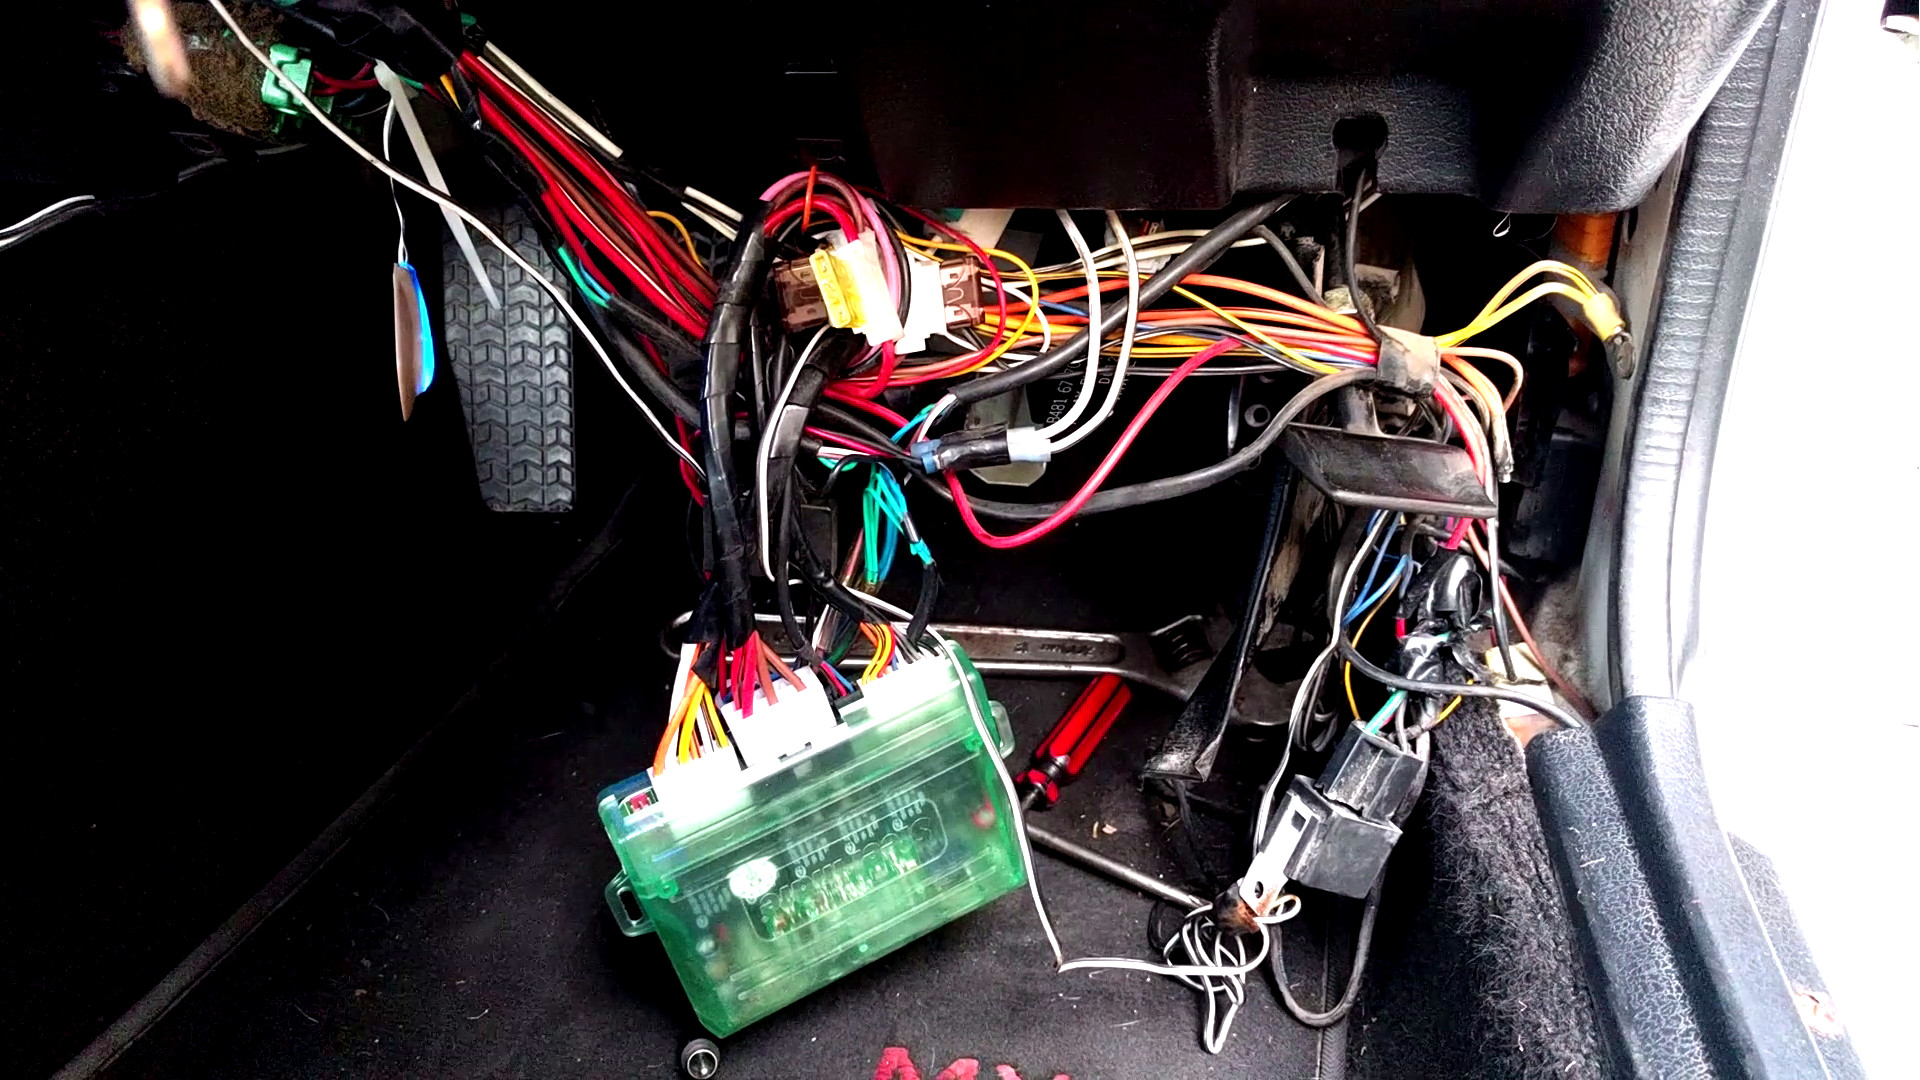 hight resolution of bmw fuse panel wiper relay junction box electronics dash removed bmw fuse panel wiper relay junction box electronics dash removed